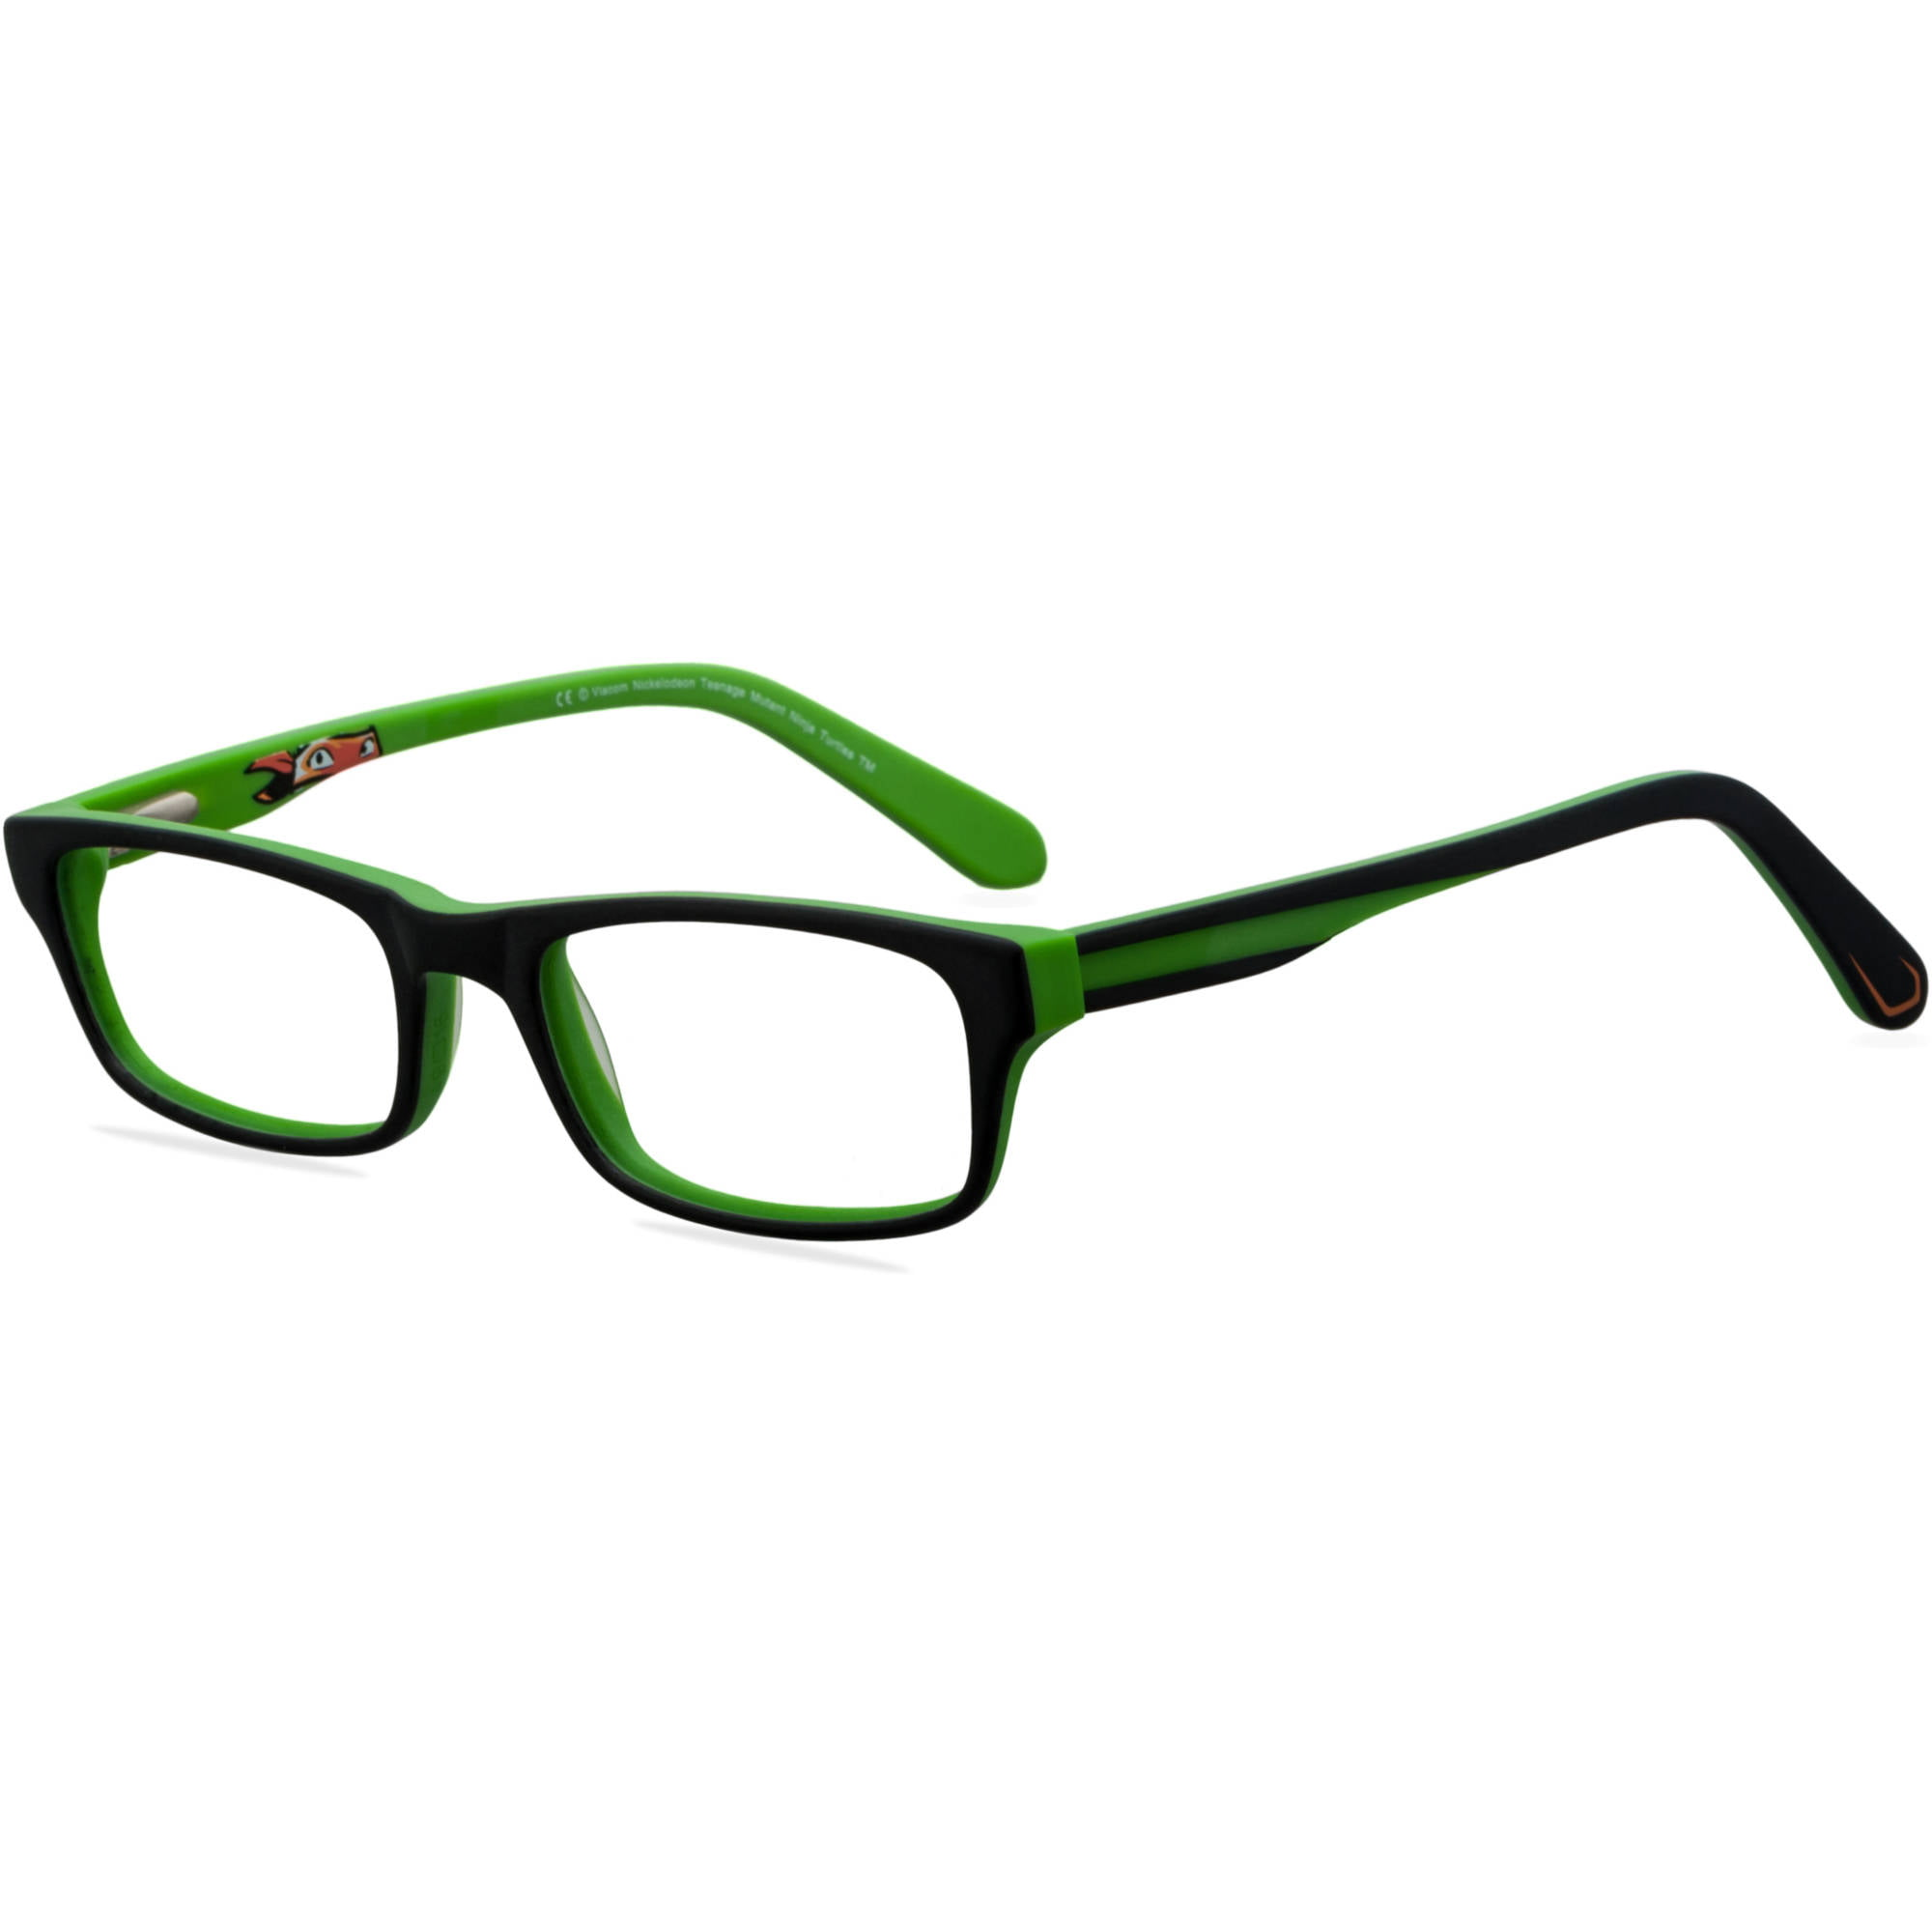 727fa5537d8 Prescription Eyeglasses - Walmart.com